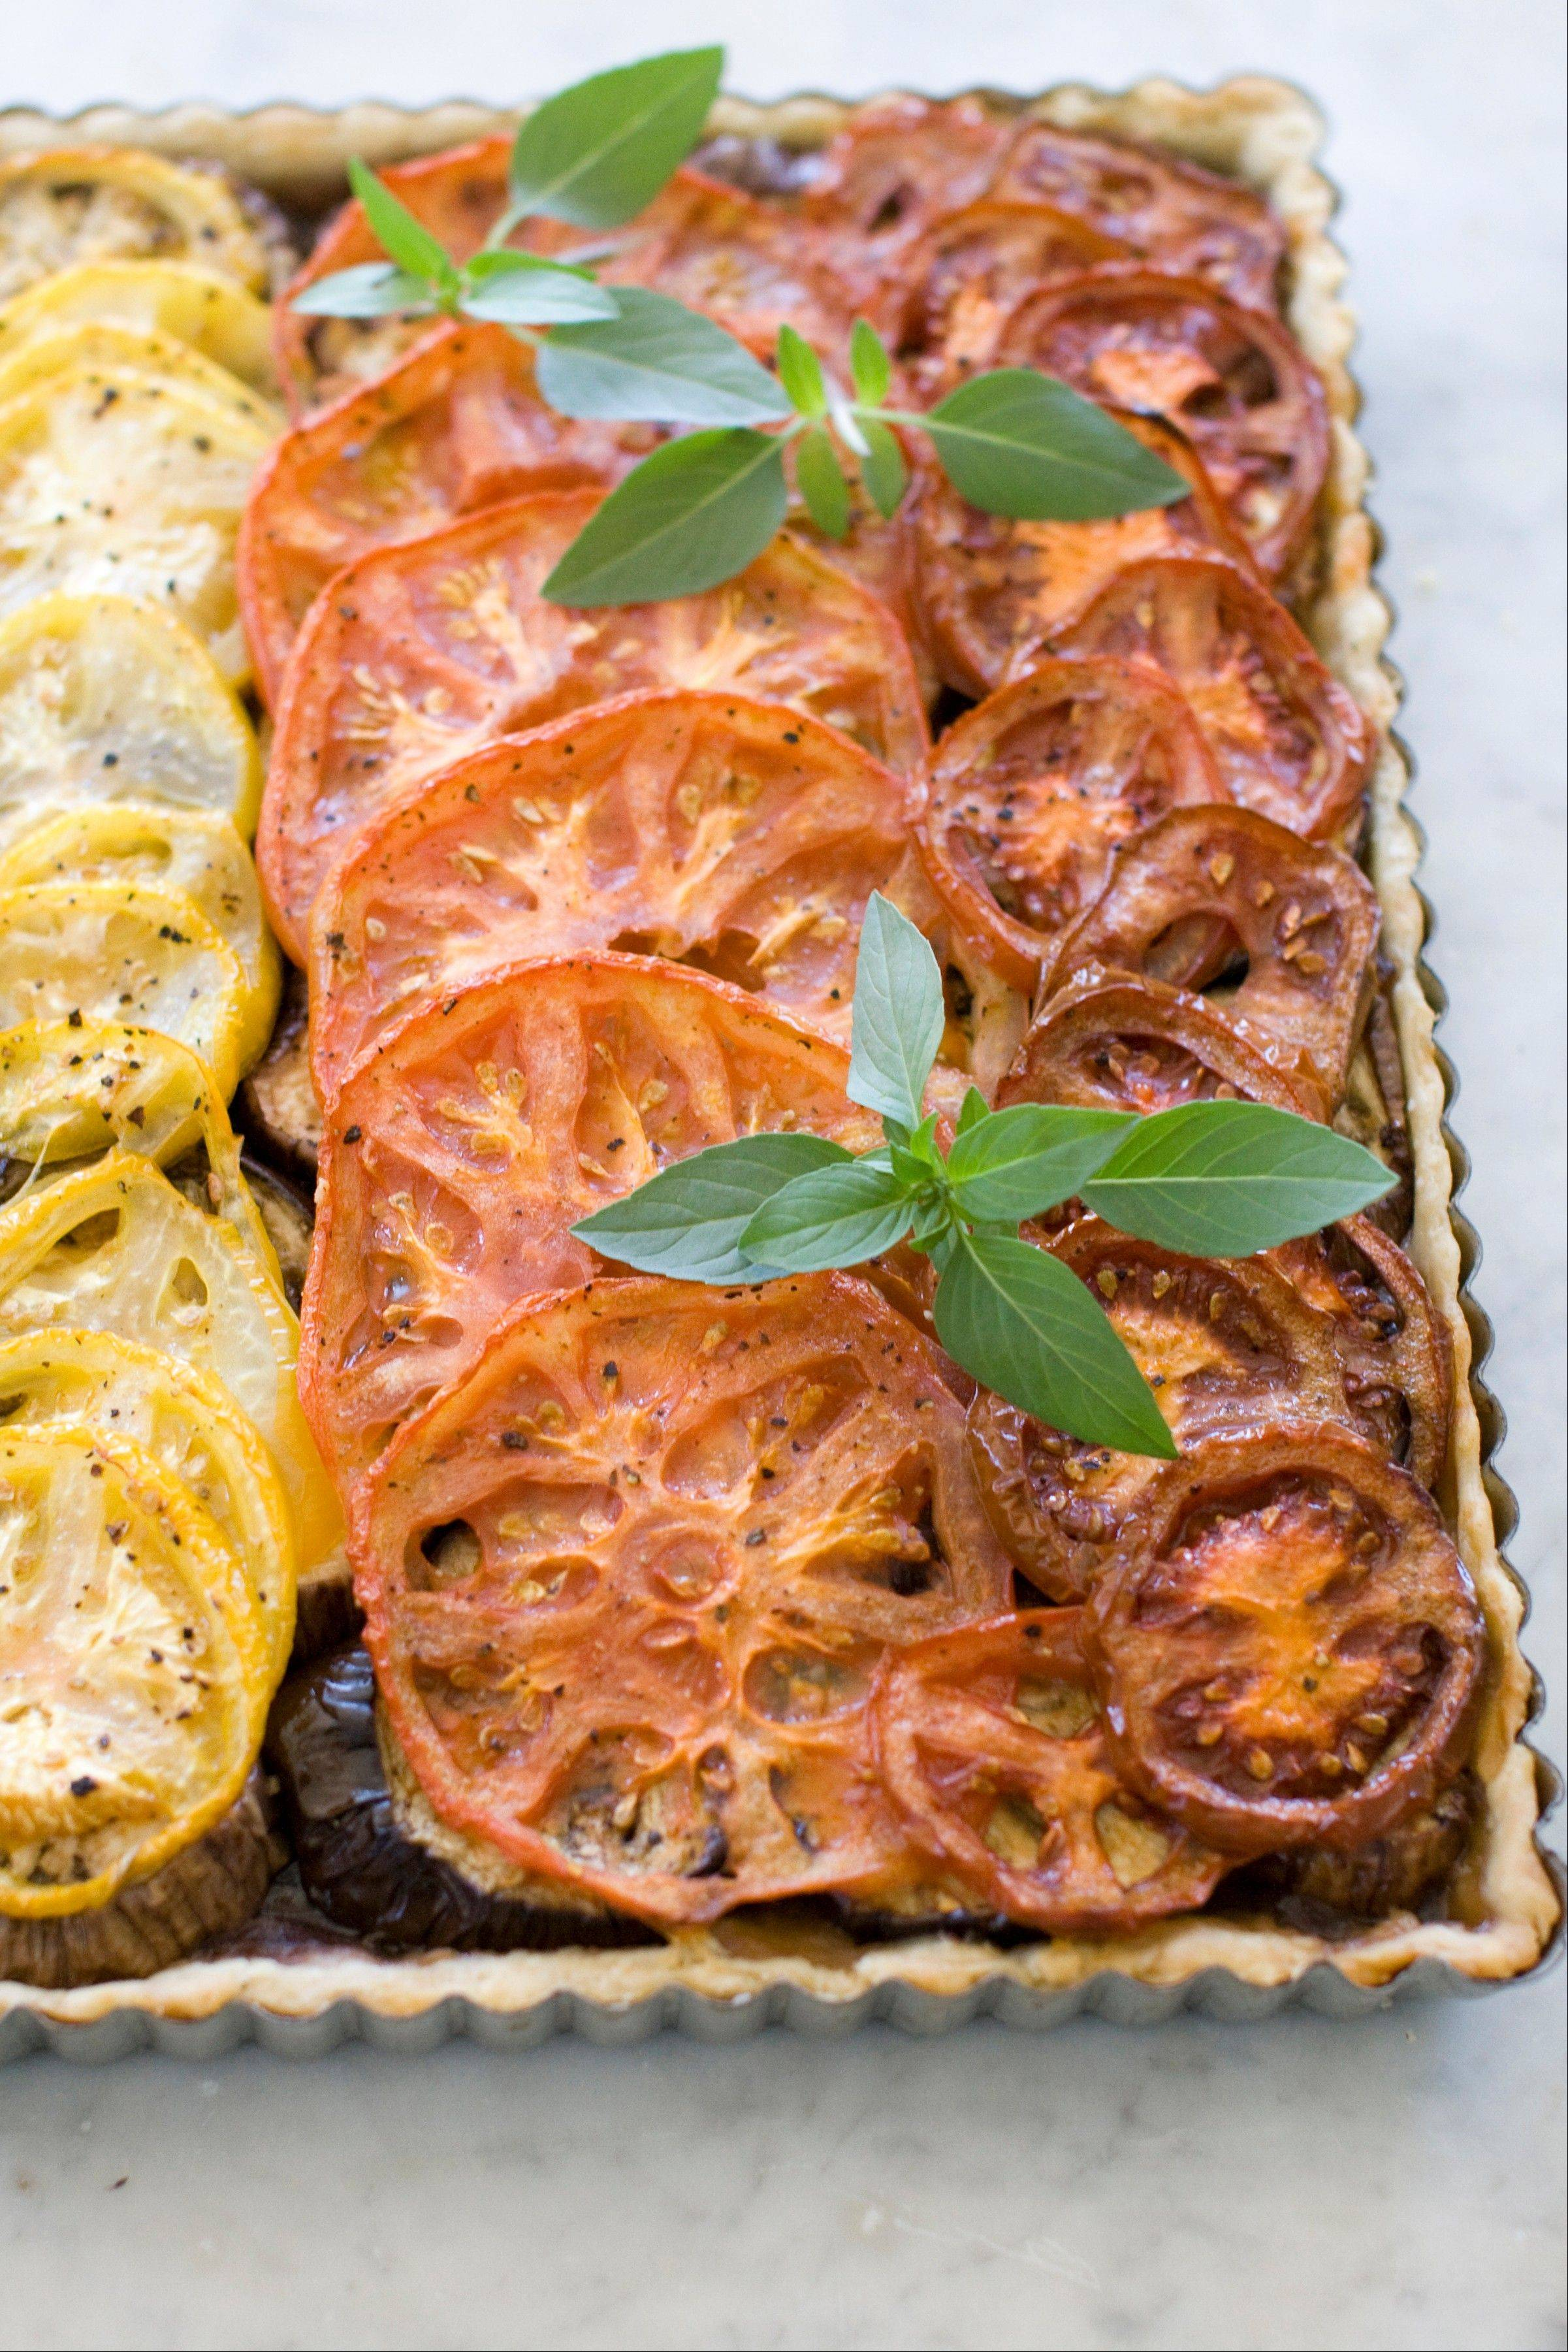 Caramelized Onion, Eggplant and Heirloom Tomato Tart is perfect for Rosh Hashana and other fall celebrations.